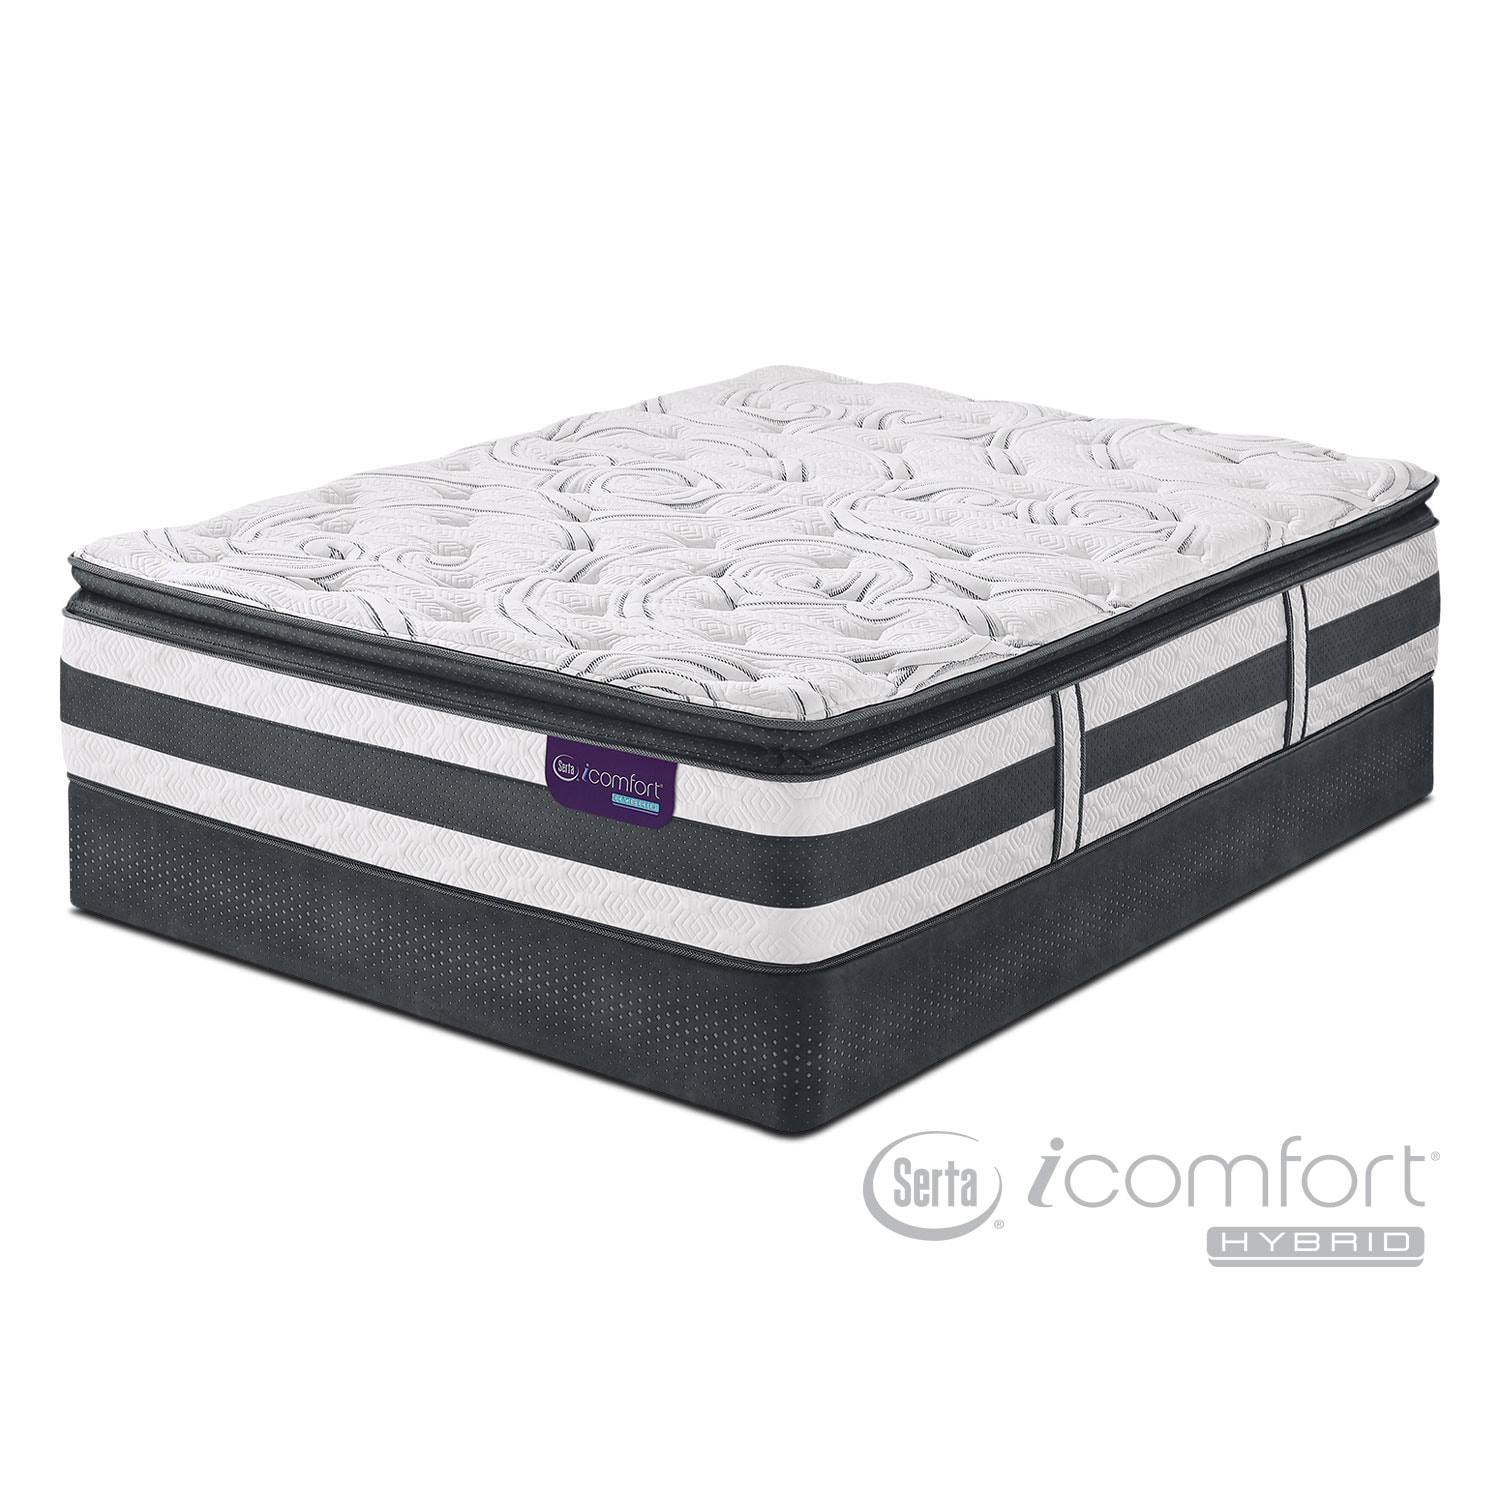 Mattresses and Bedding - Observer King Mattress/Split Low-Profile Foundation Set